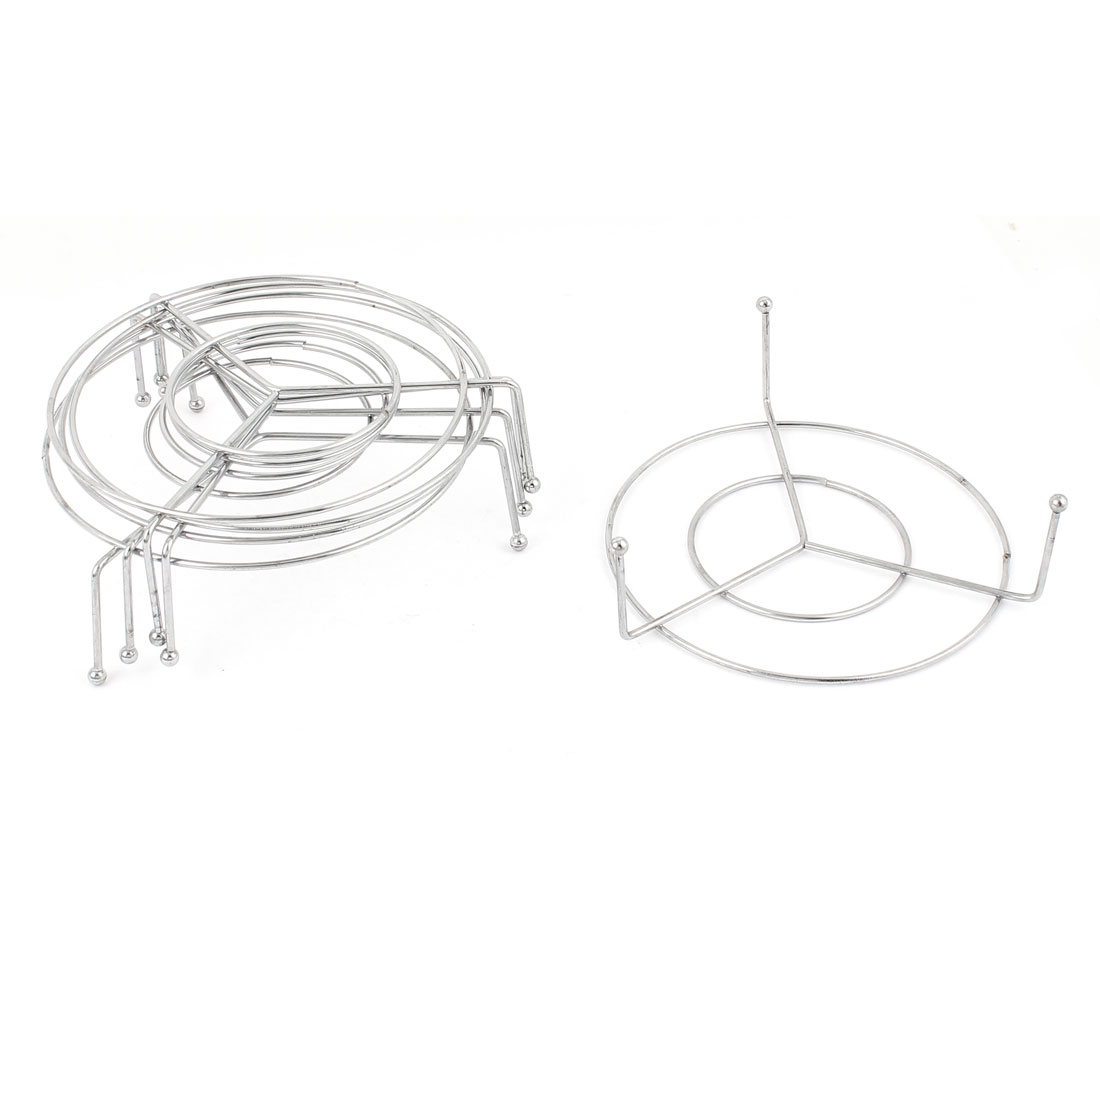 Kitchen Metal Wire Round Cooking Ware Food Steaming Rack Stand 11cm Diameter 5pcs Silver Tone